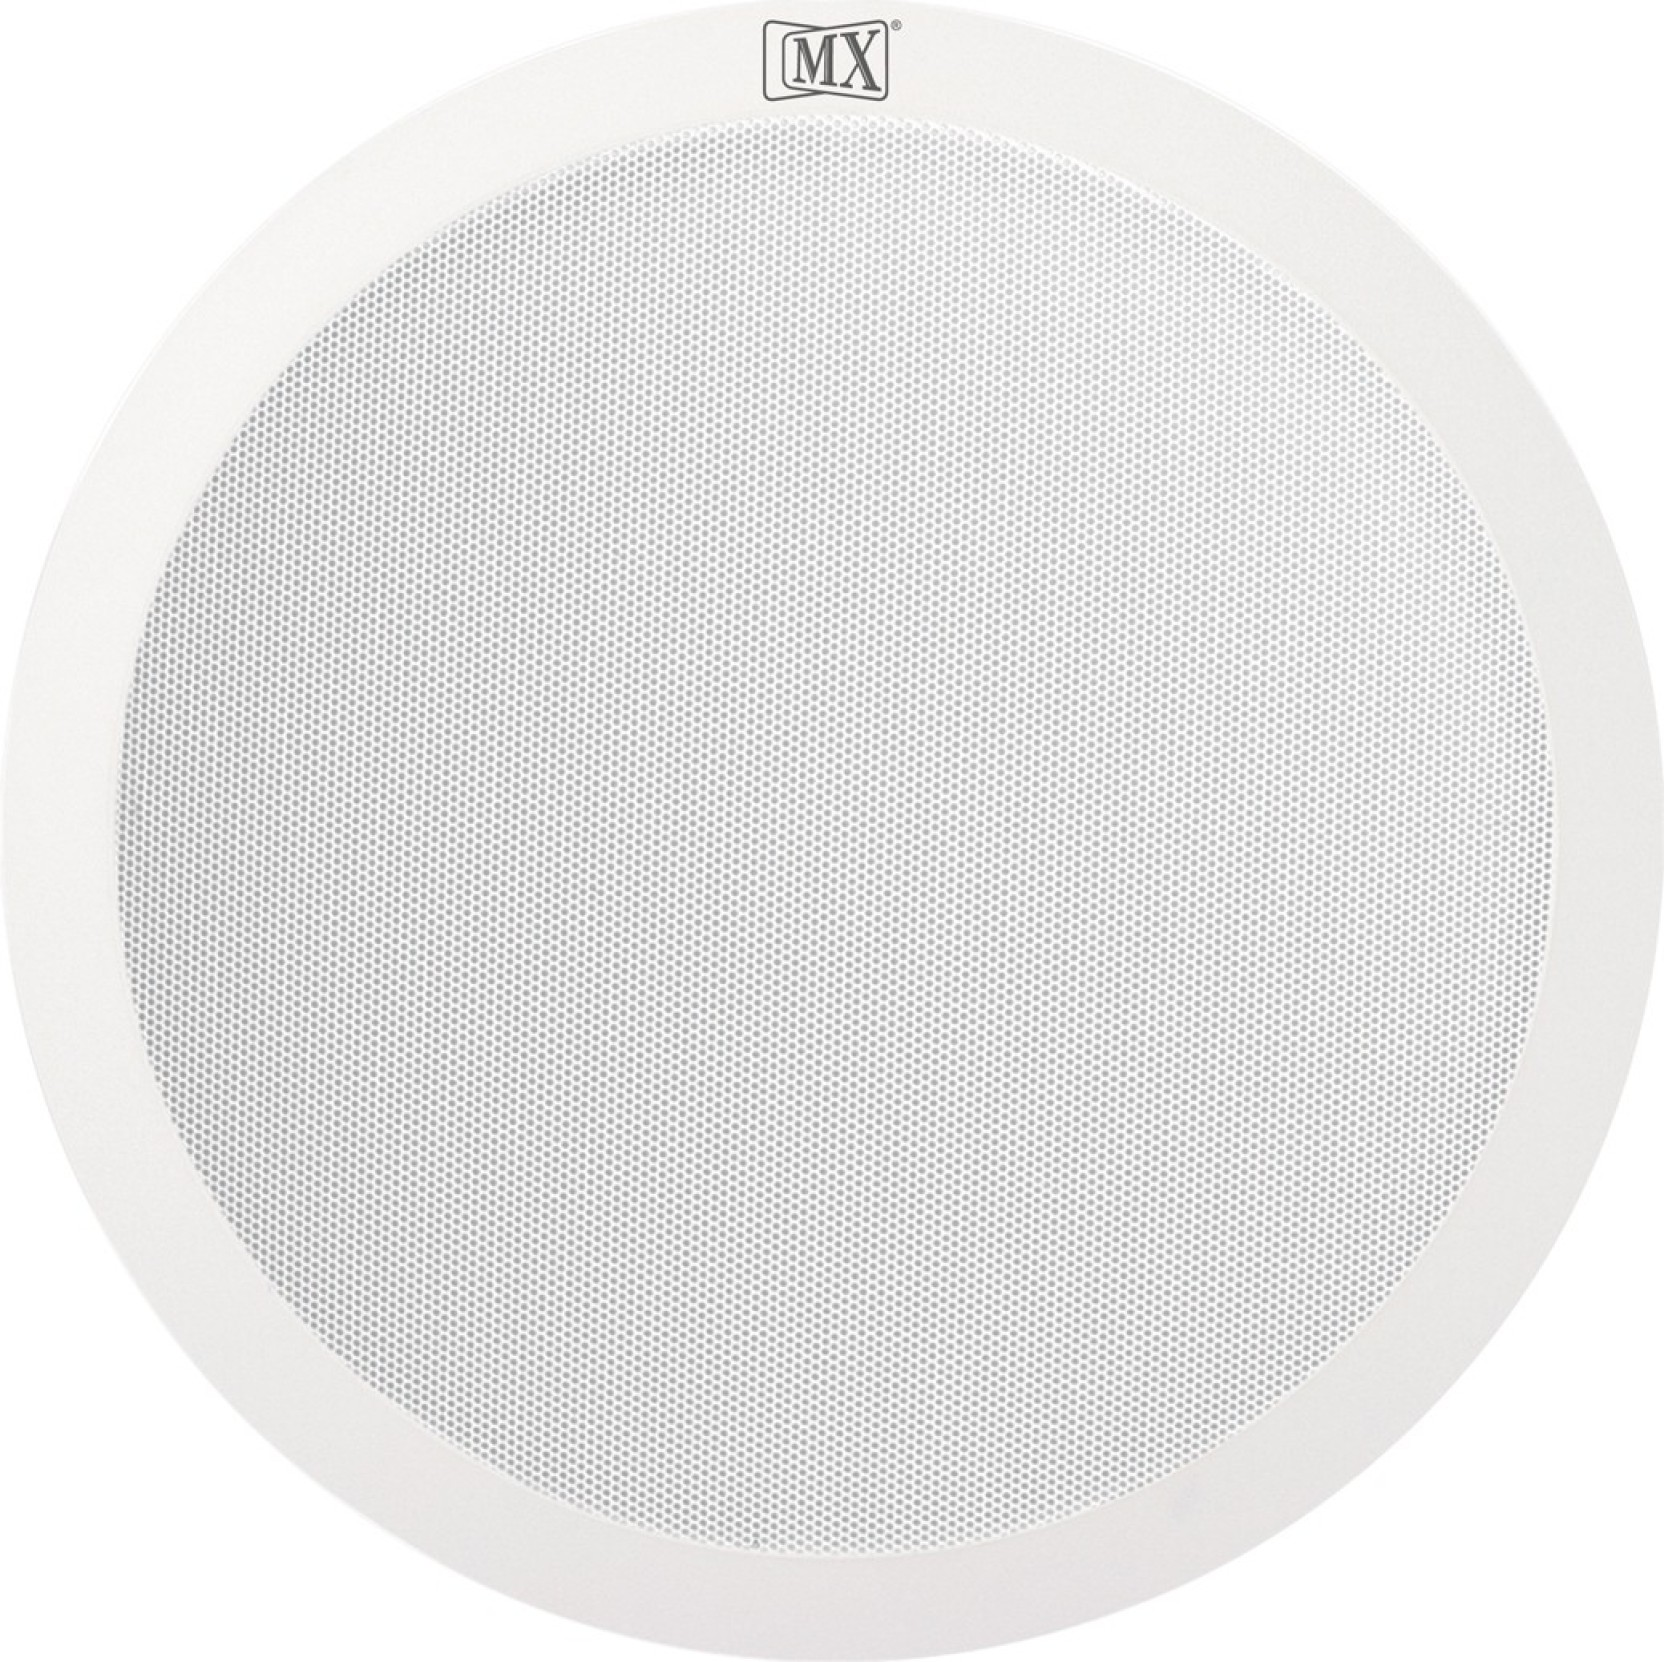 MX 6 Inch Professional Weather Proof 2-way In-ceiling / In-wall